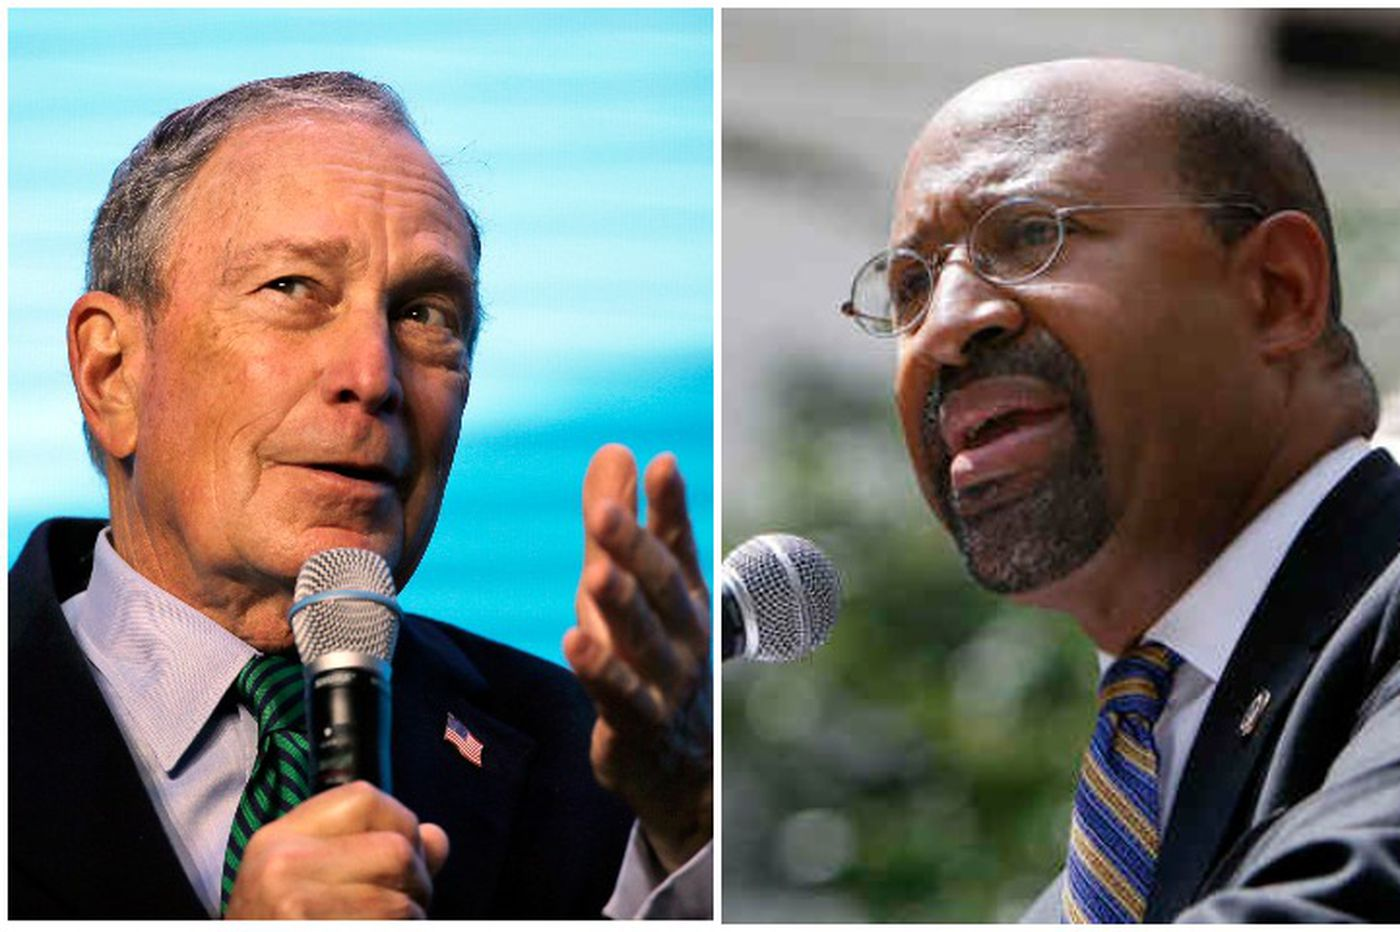 Michael Bloomberg just landed his first Pa. endorsement: former Philly Mayor Michael Nutter